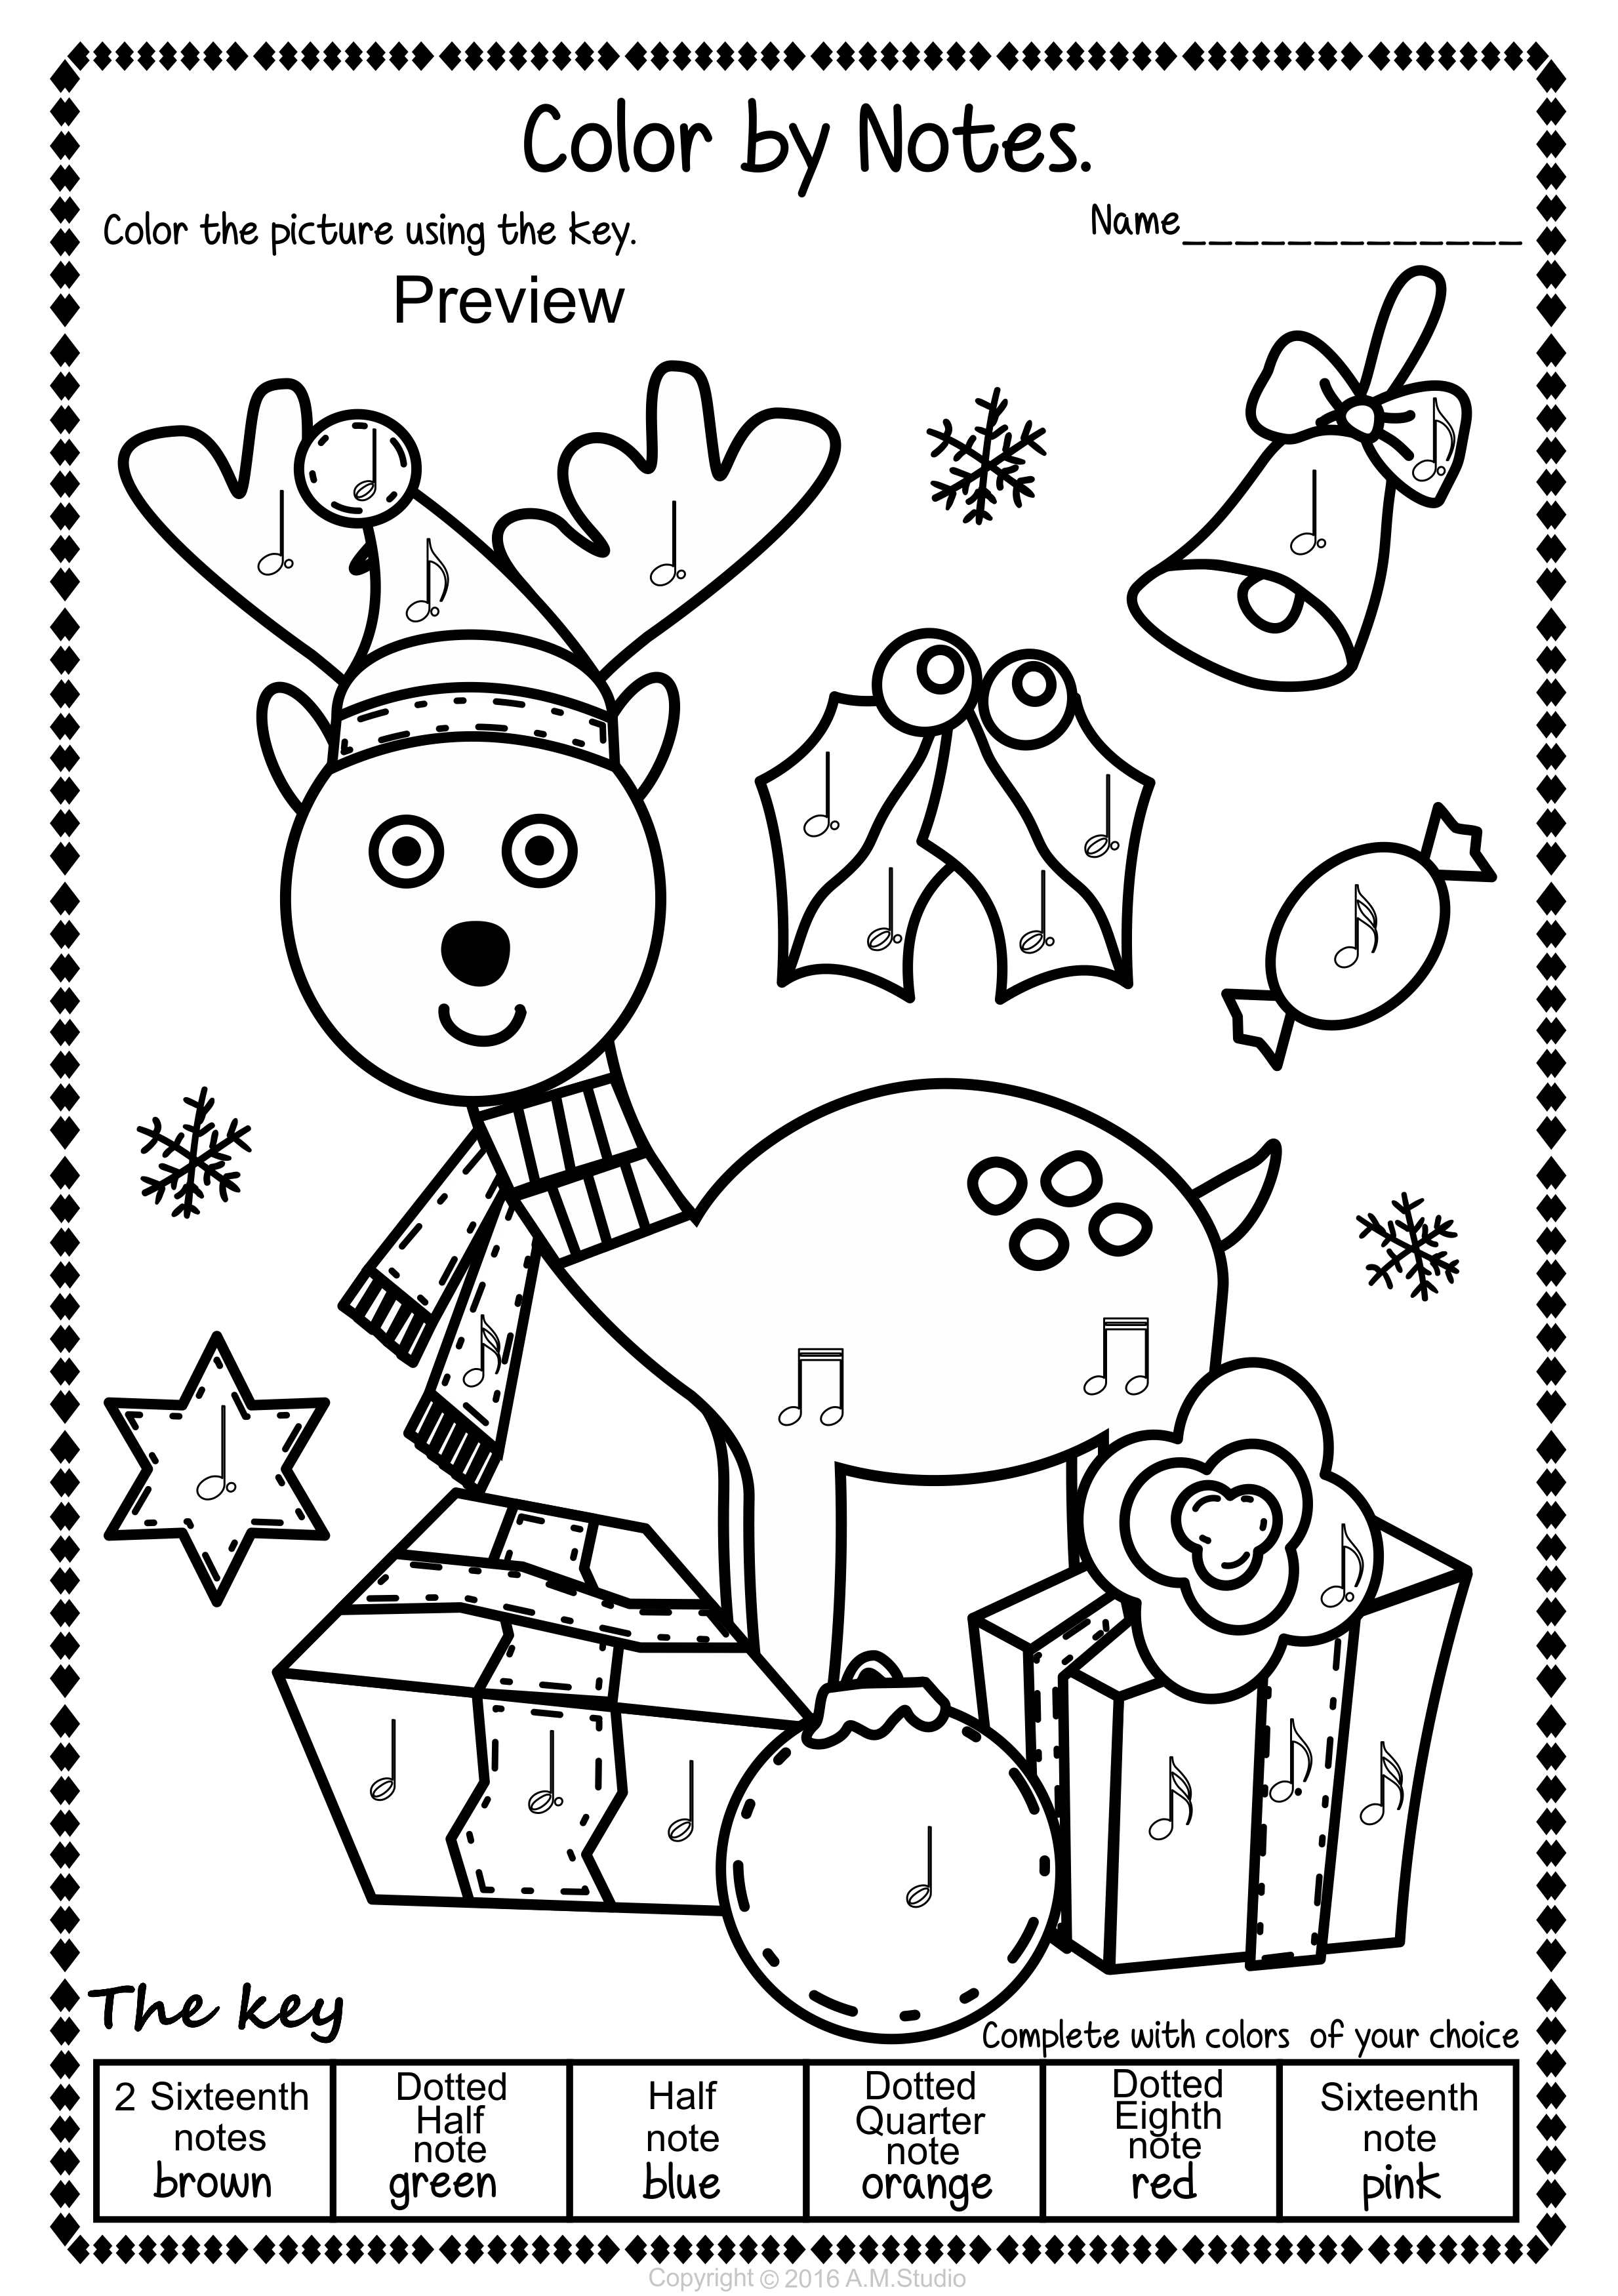 coloring notes free printable music notes coloring pages coloring notes